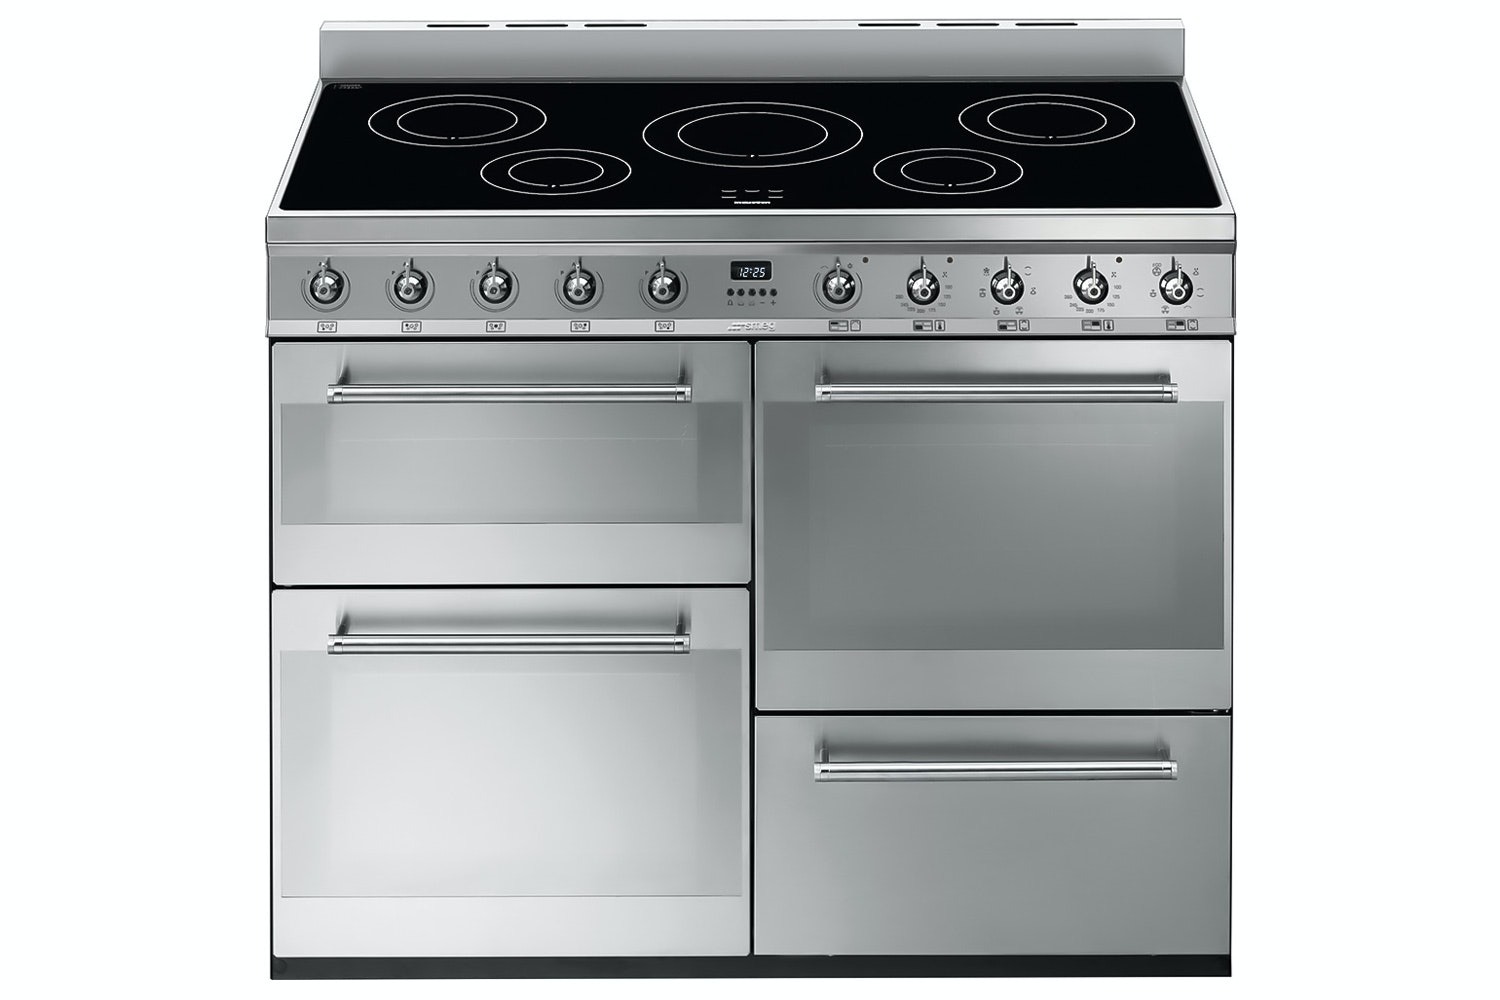 Smeg 110cm Electric Range Cooker | SYD4110 | Stainless Steel